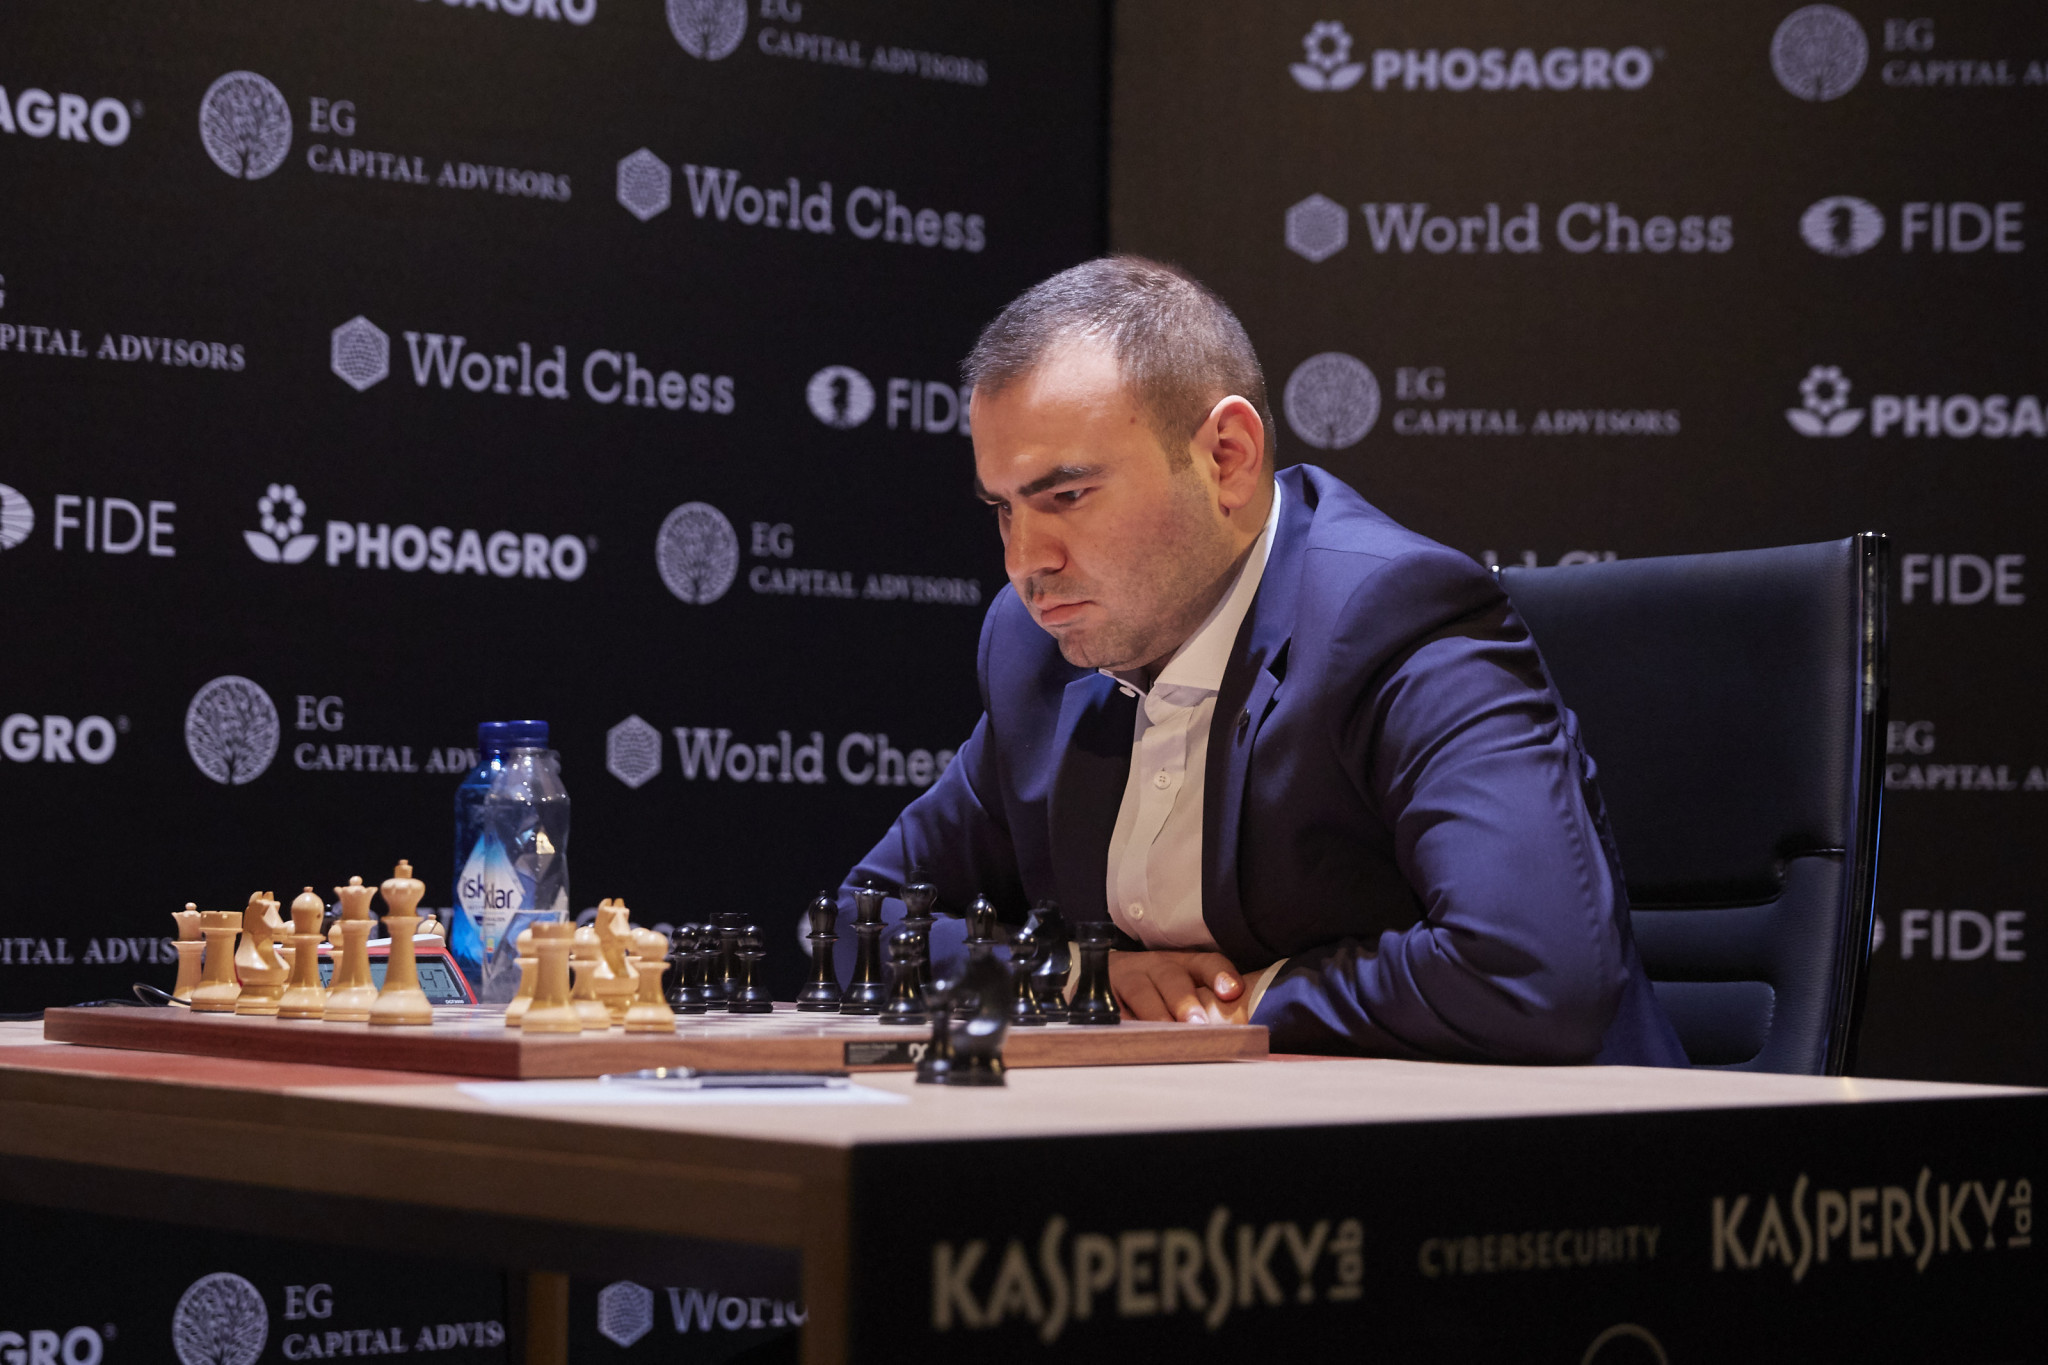 Shakhriyar Mamedyarov of Azerbaijan has moved up to joint leadership of the FIDE Candidates Tournament as it approaches the halfway point in Berlin ©Getty Images